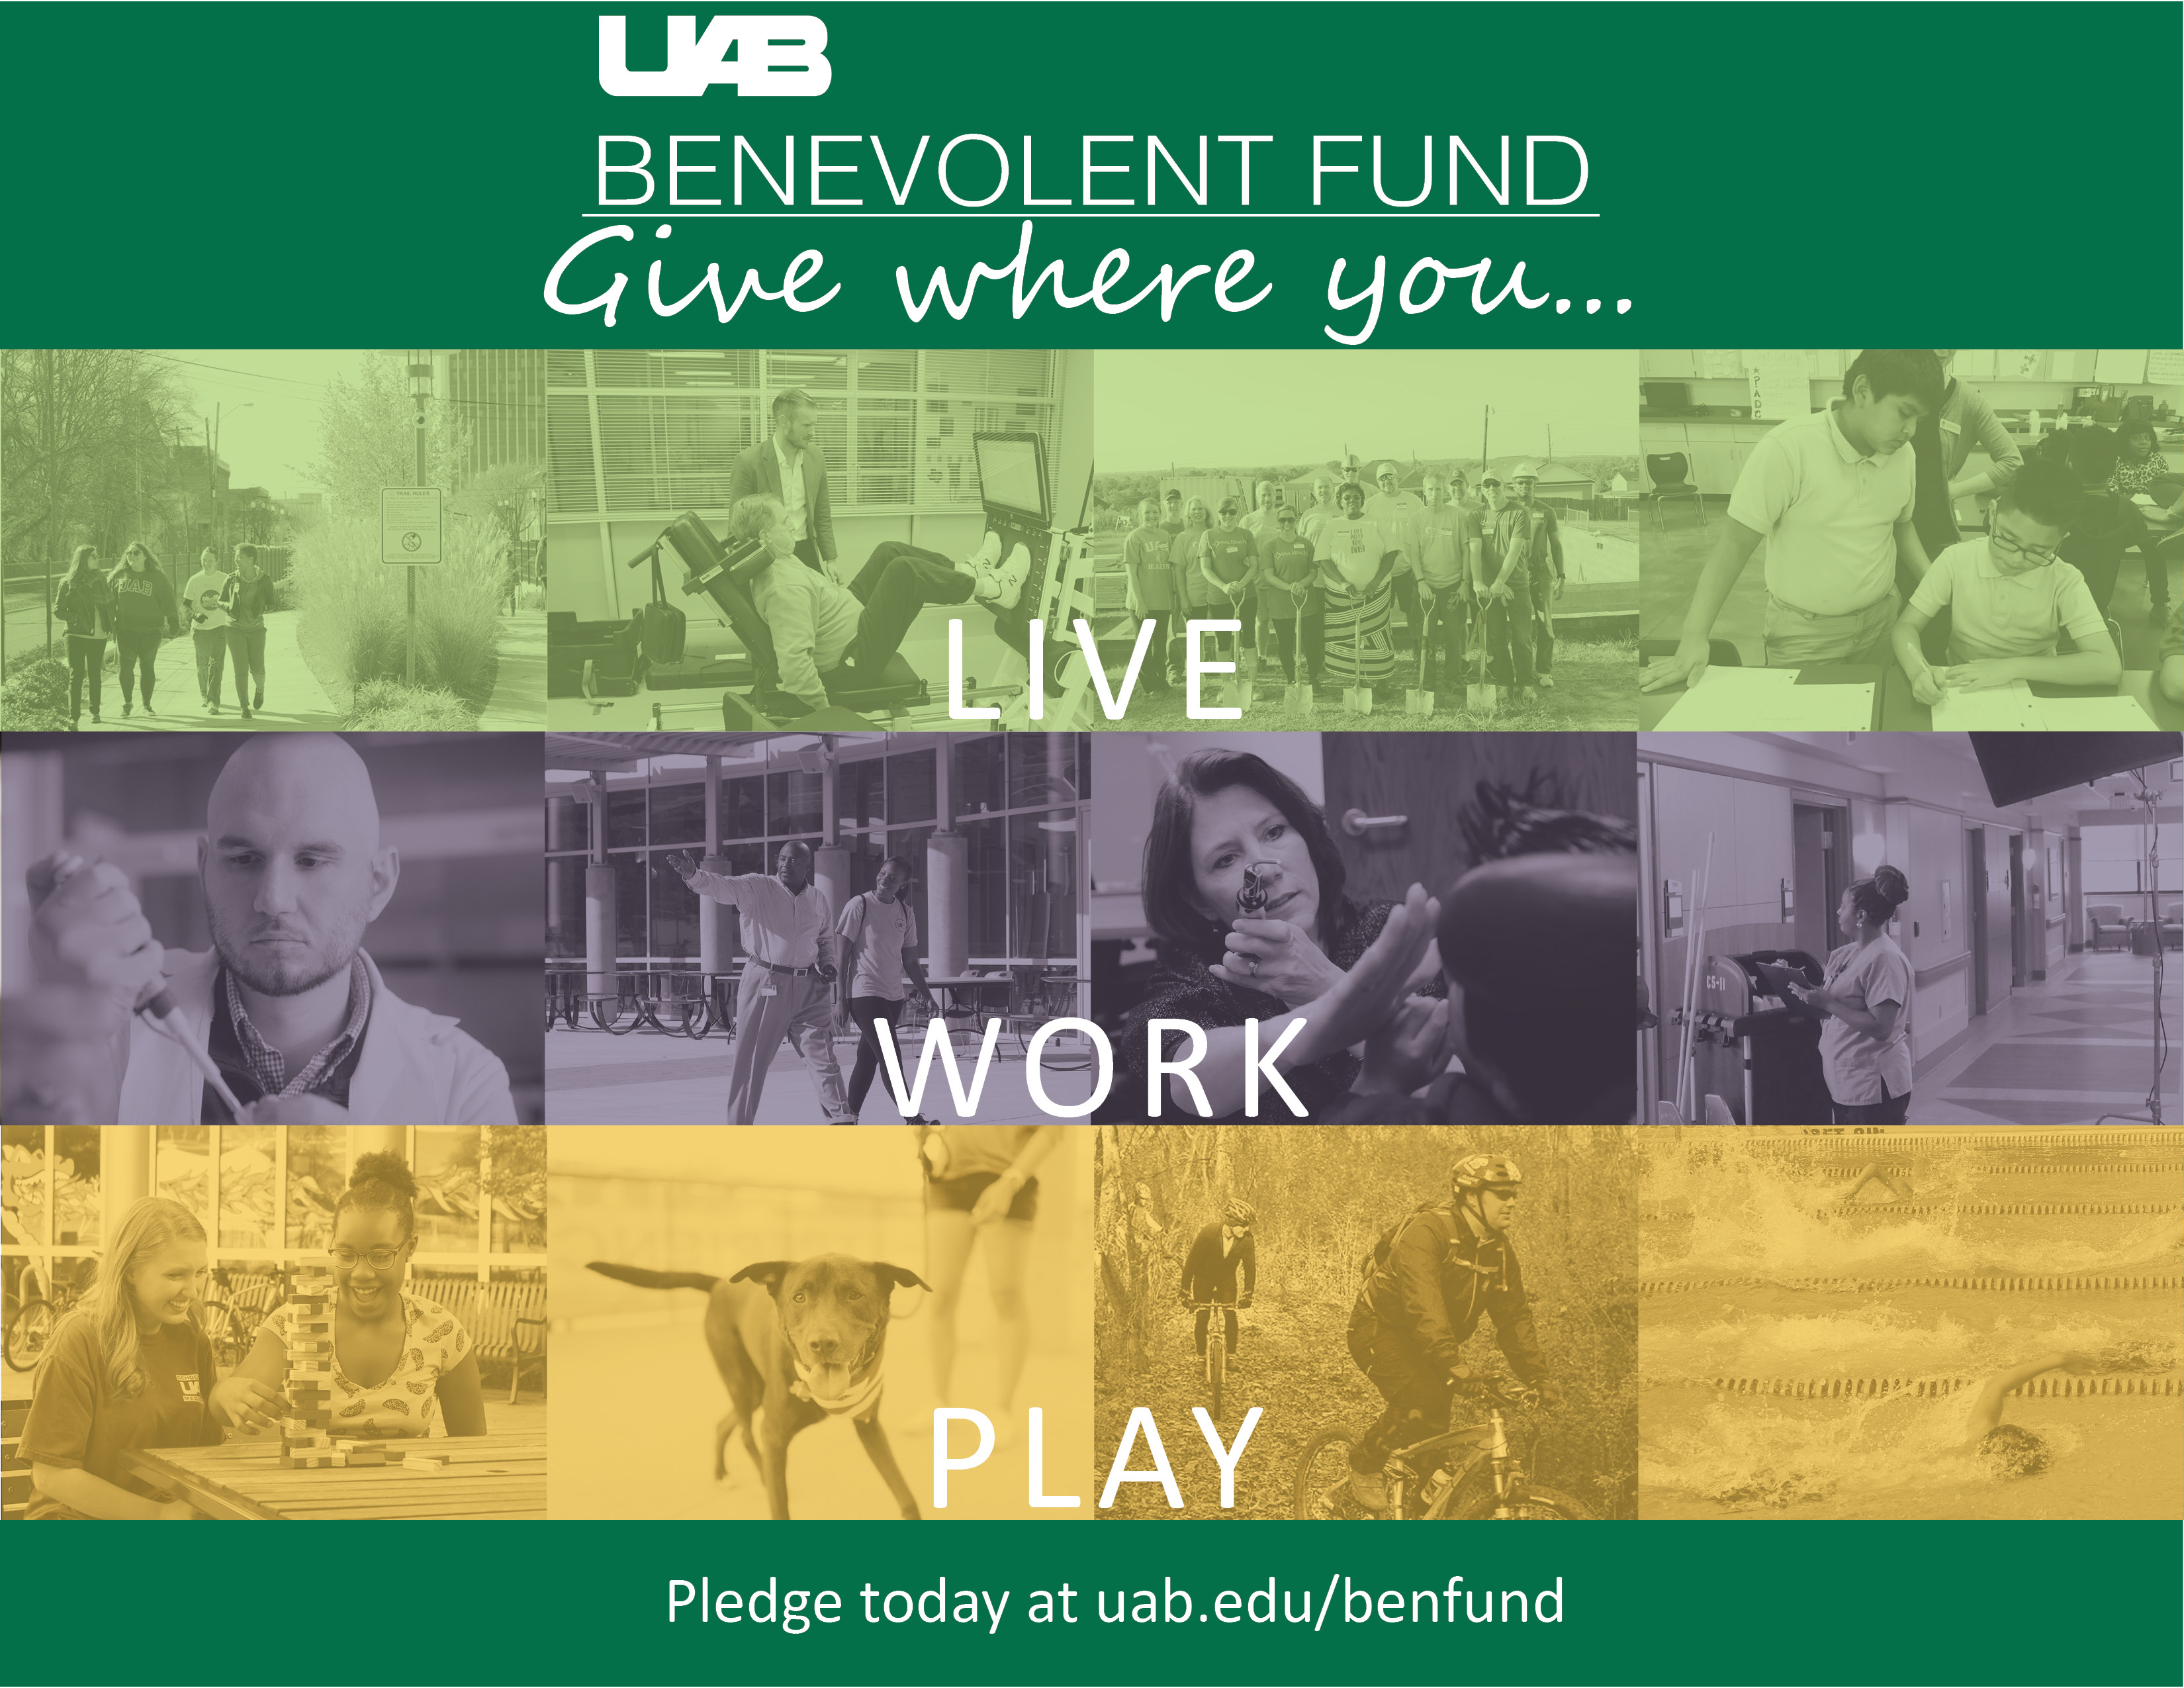 liveworkplay poster